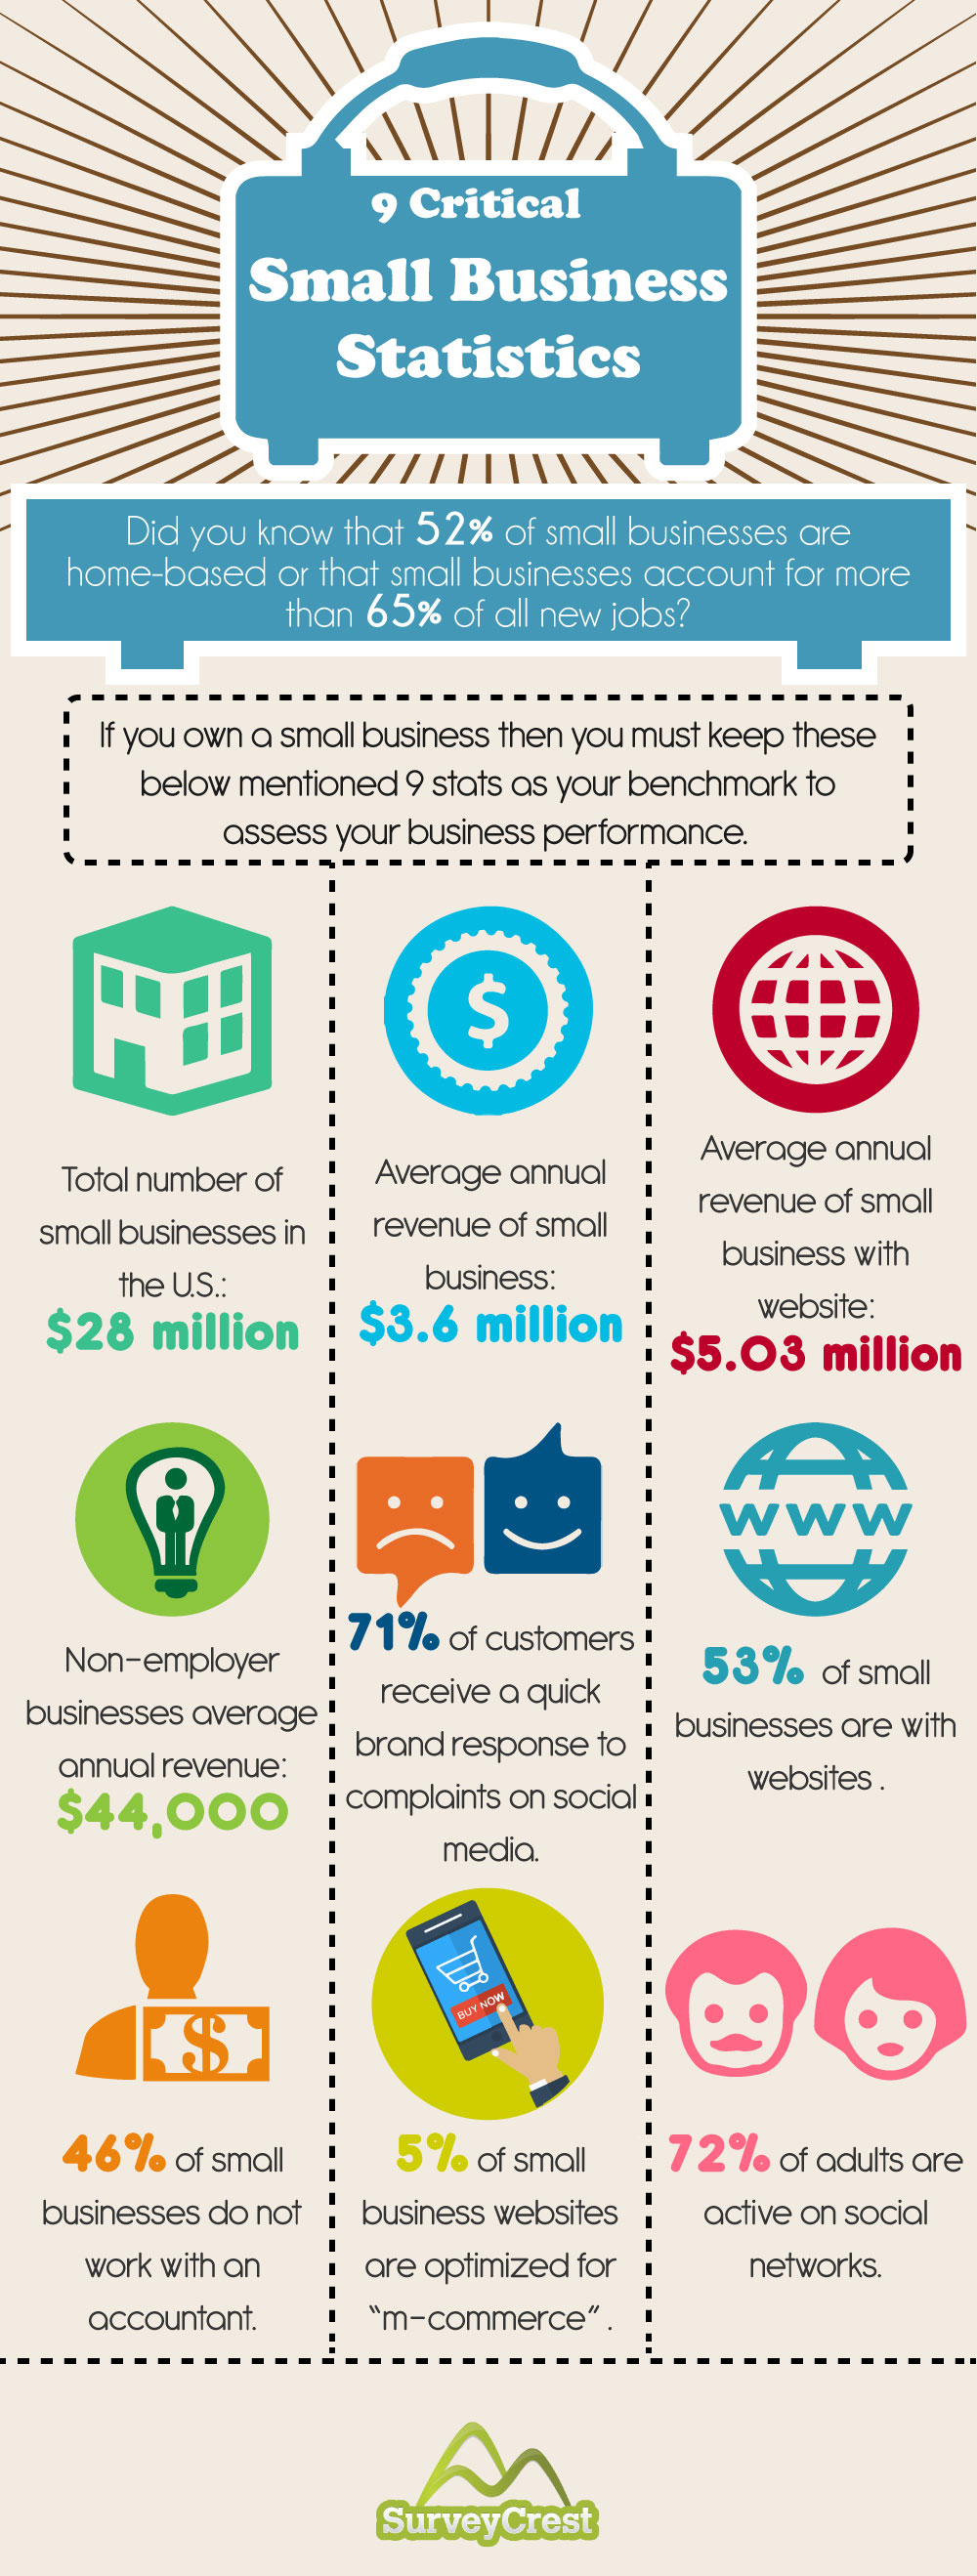 9 Critical Small Business Statistics